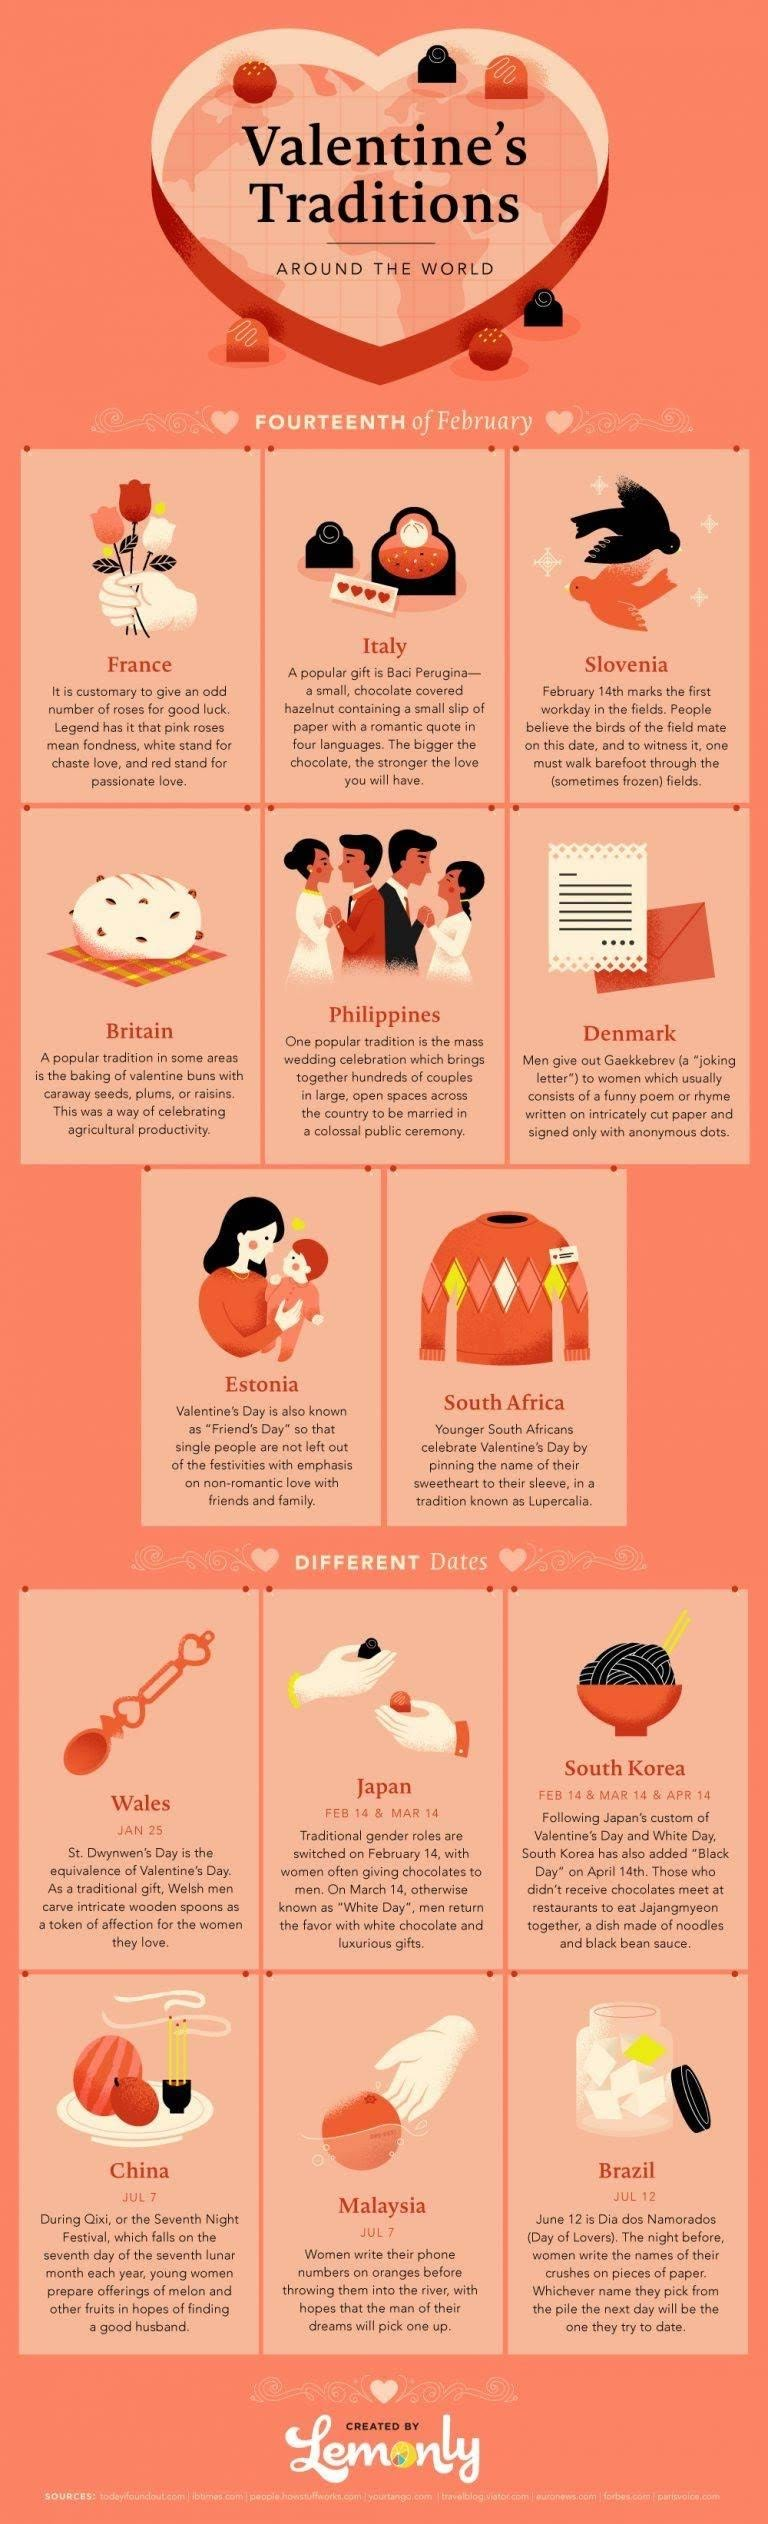 Valentine's Traditions From Around The World #infographic